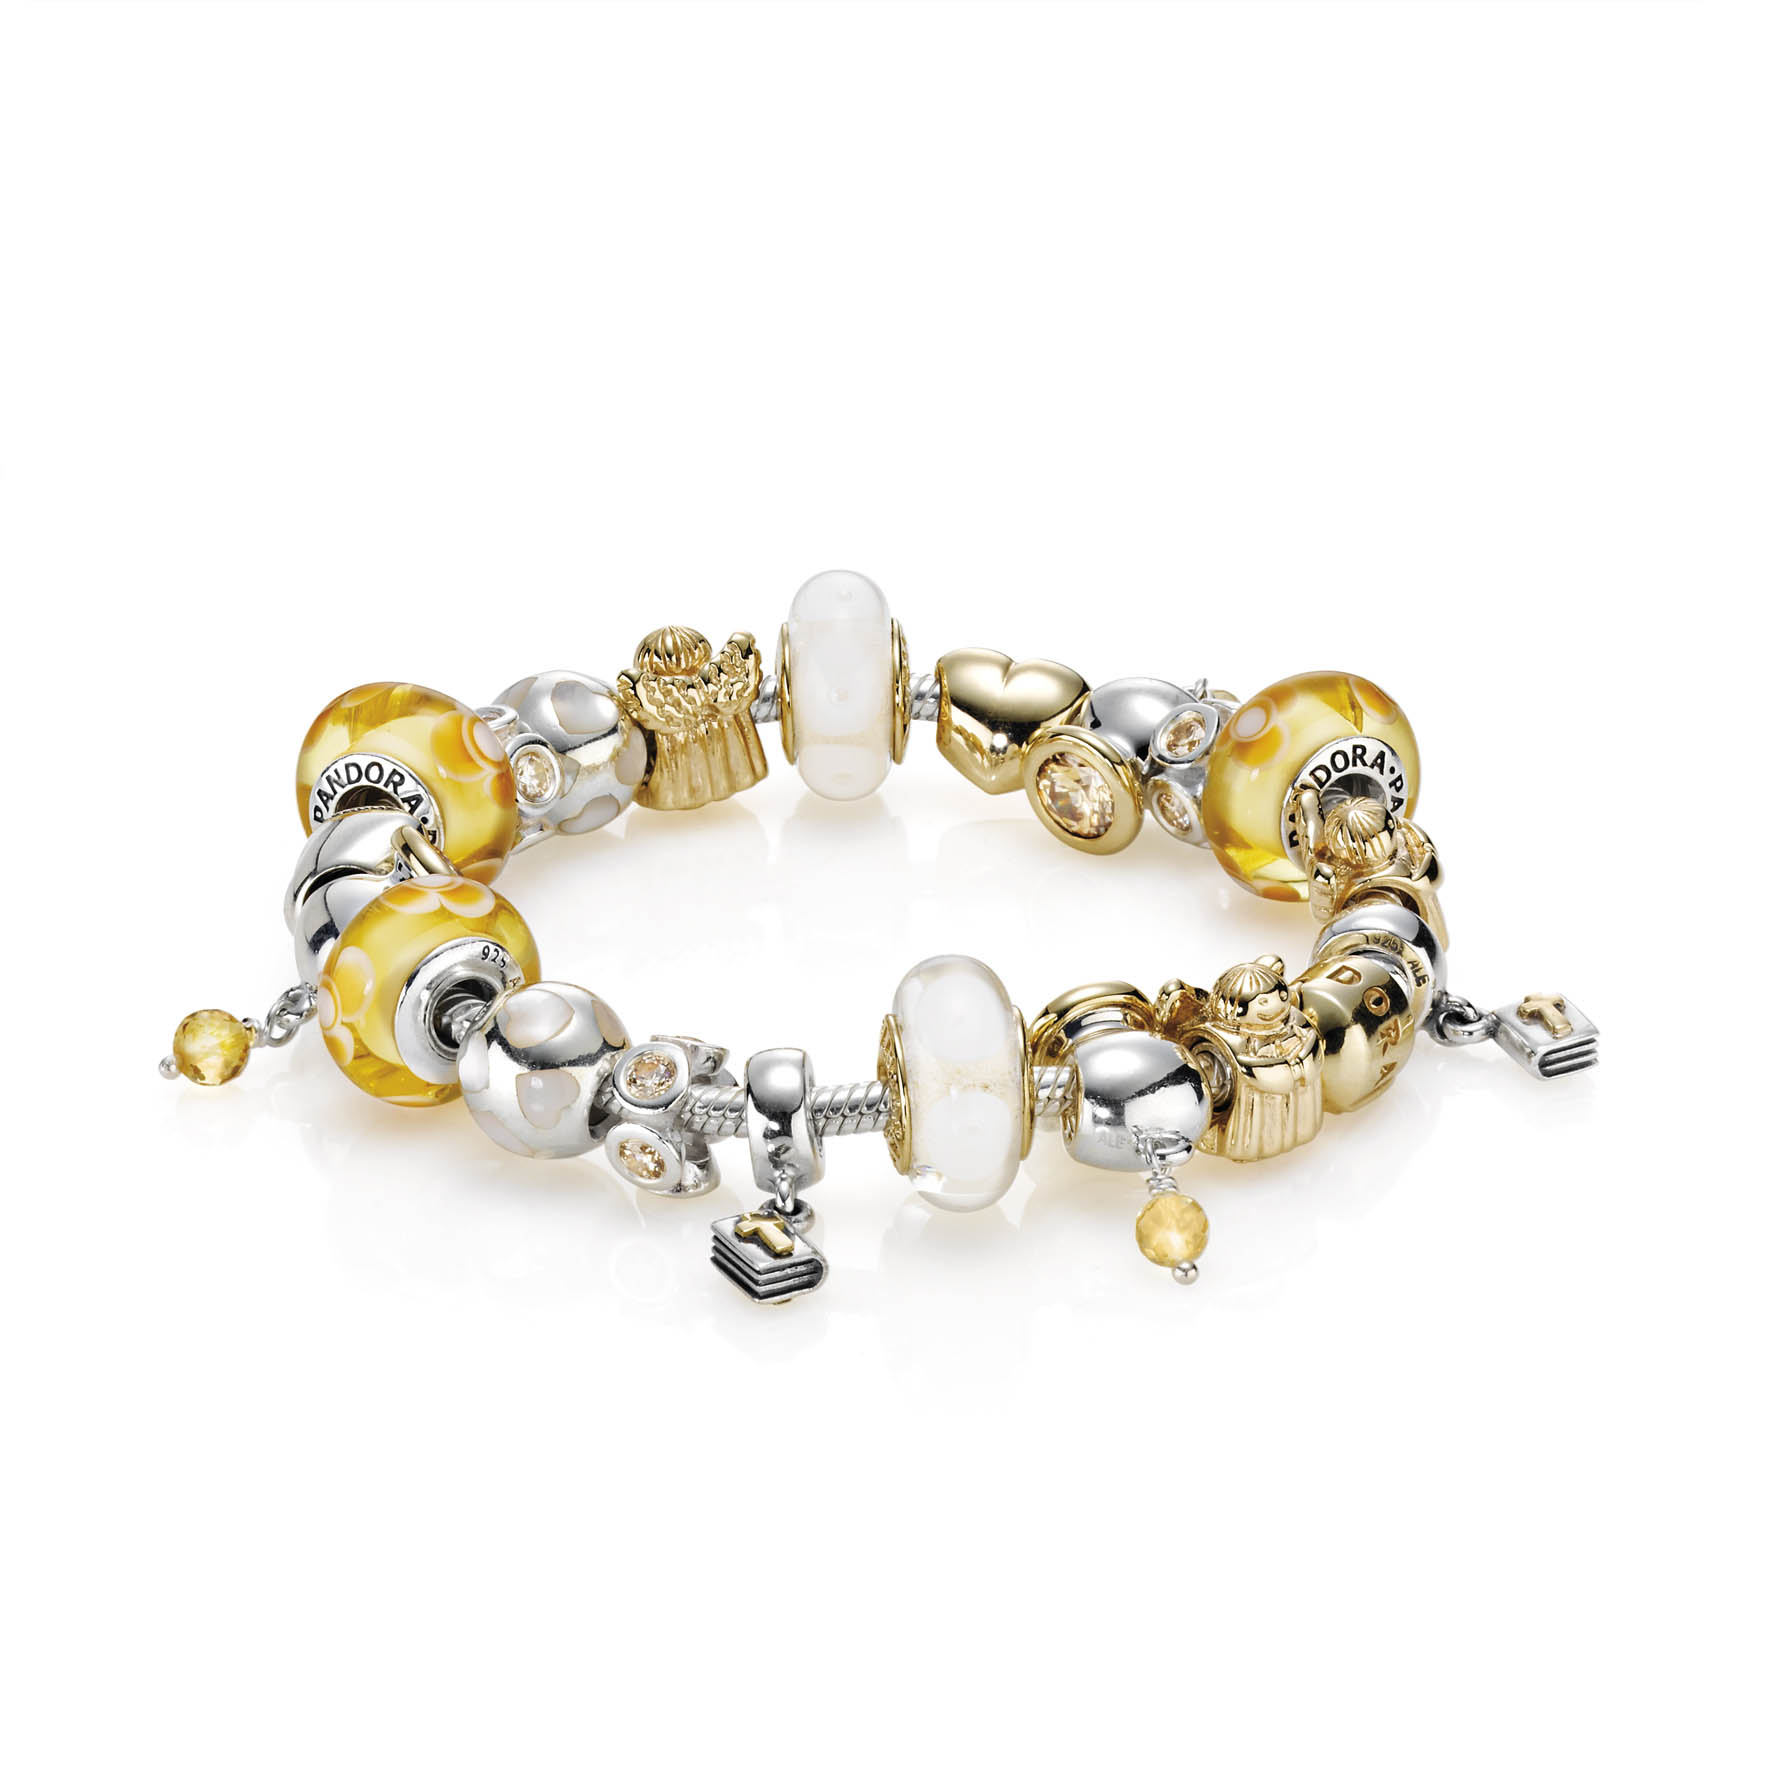 bangles bracelet persona preview collection addict pandora bangle charms peanuts